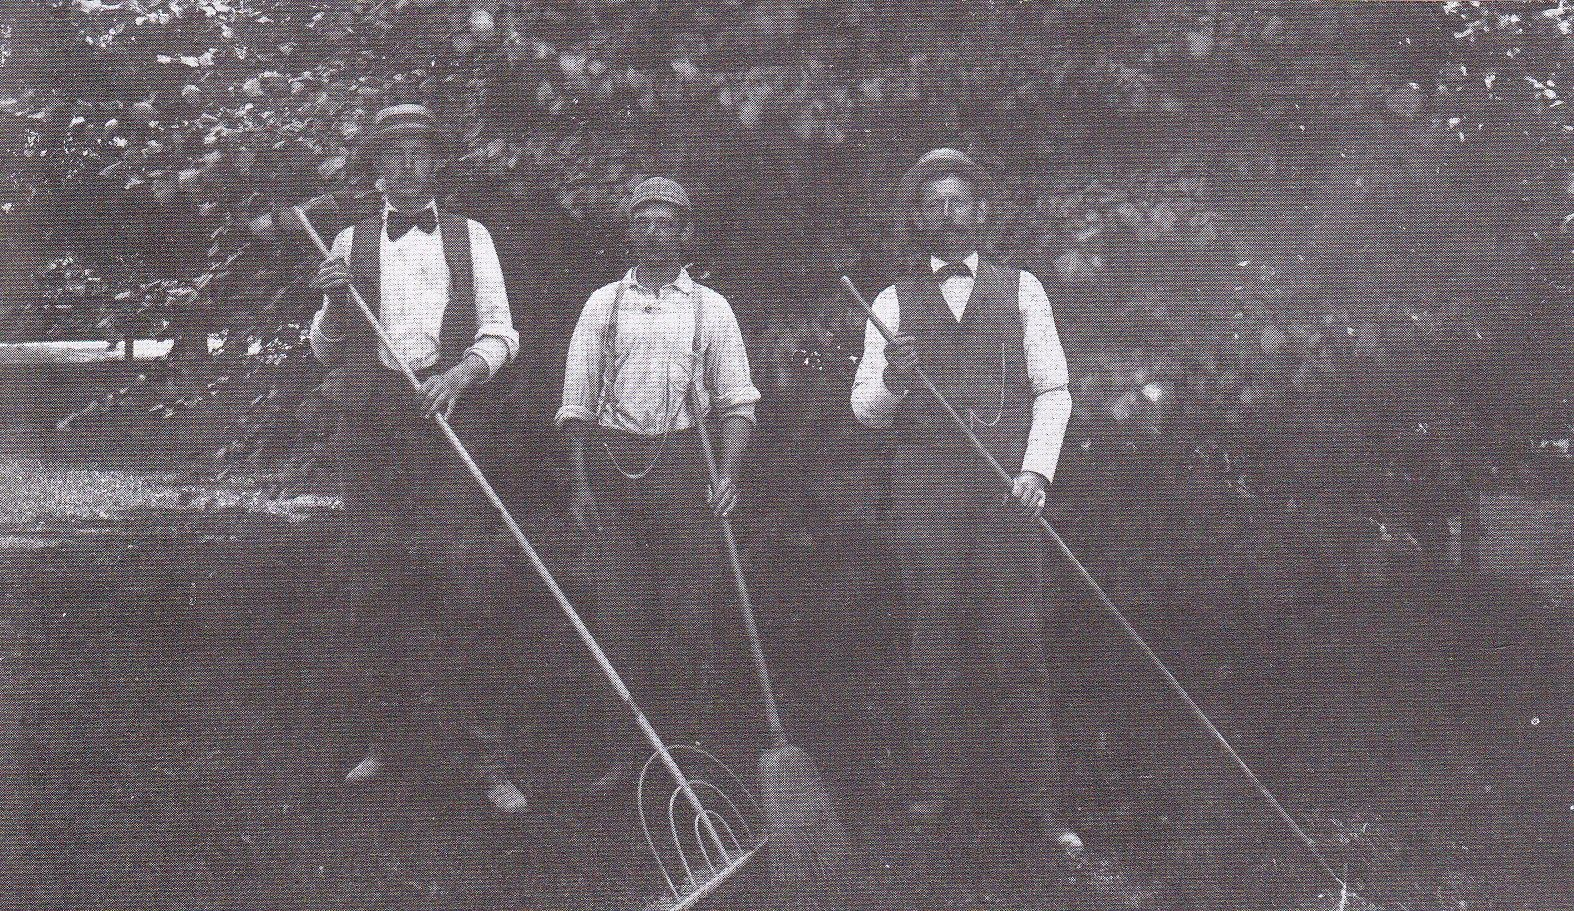 Highfield gardeners. (With images) Historical, Olds